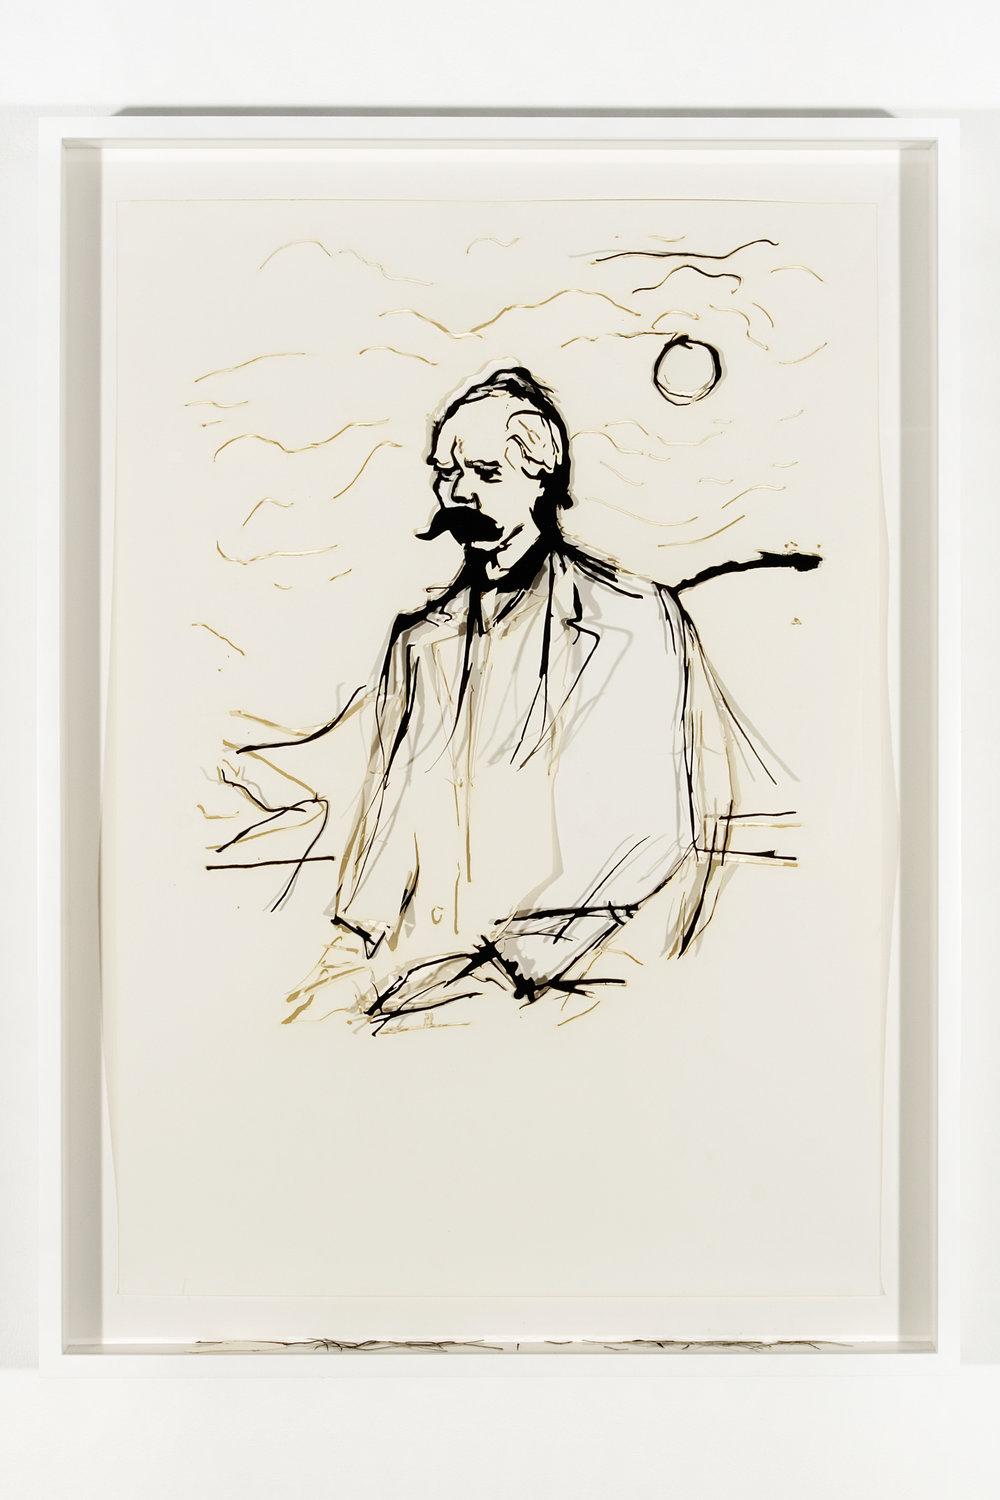 """Collapsed Drawing: """"Friedrich Nietzsche"""" (Edvard Munch), 2007 laser-cut paper and laser-cut archival digital print mounted on museum board 86 x 63 cm - 33 7/8 x 24 3/4 inches (framed)"""